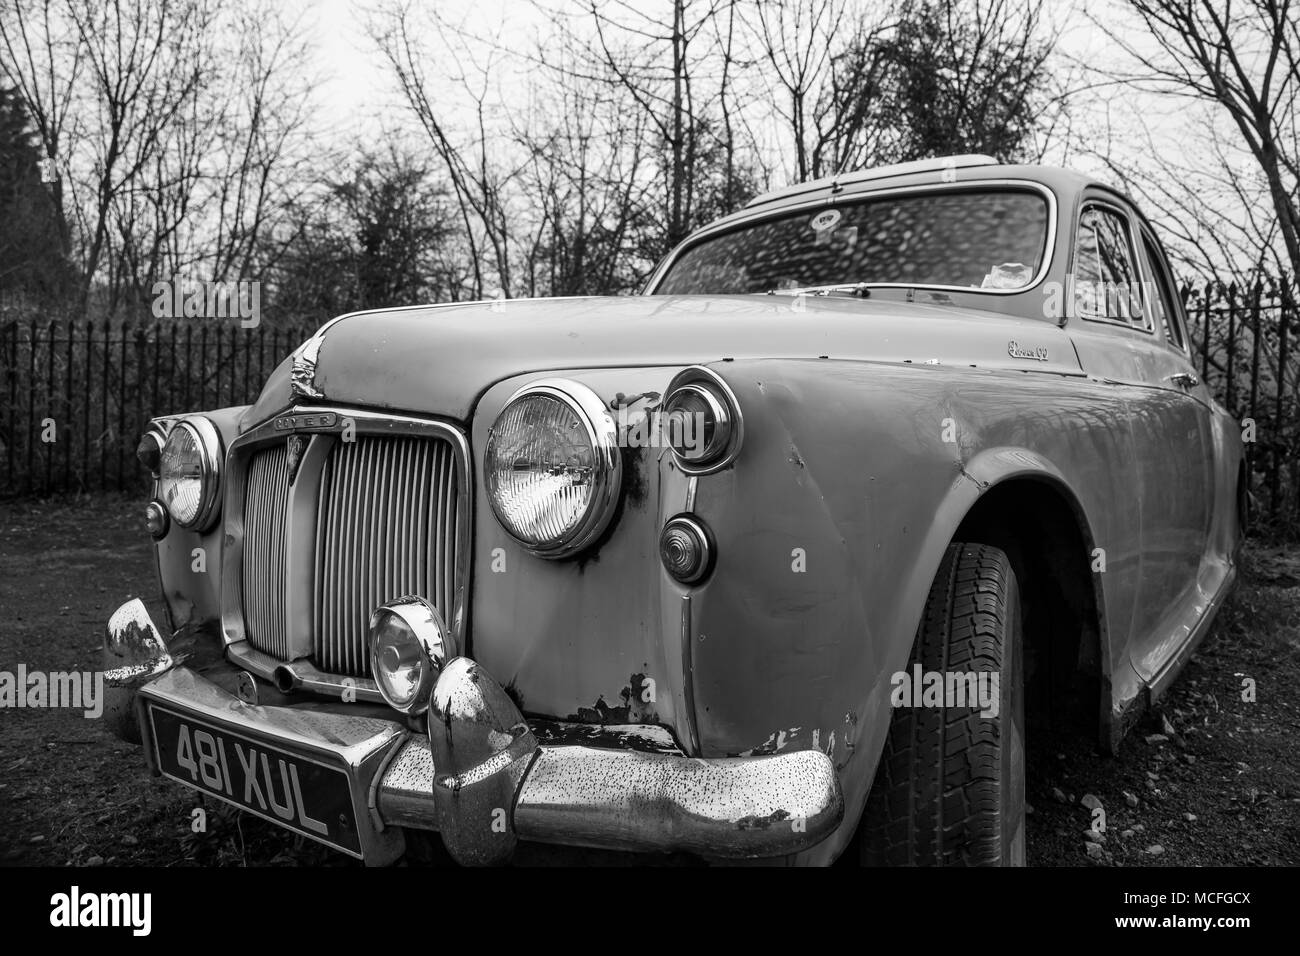 Black and white close up of a Rover P90 that has seen better times & is now an abandoned relic in retirement, alone in a deserted car park. - Stock Image